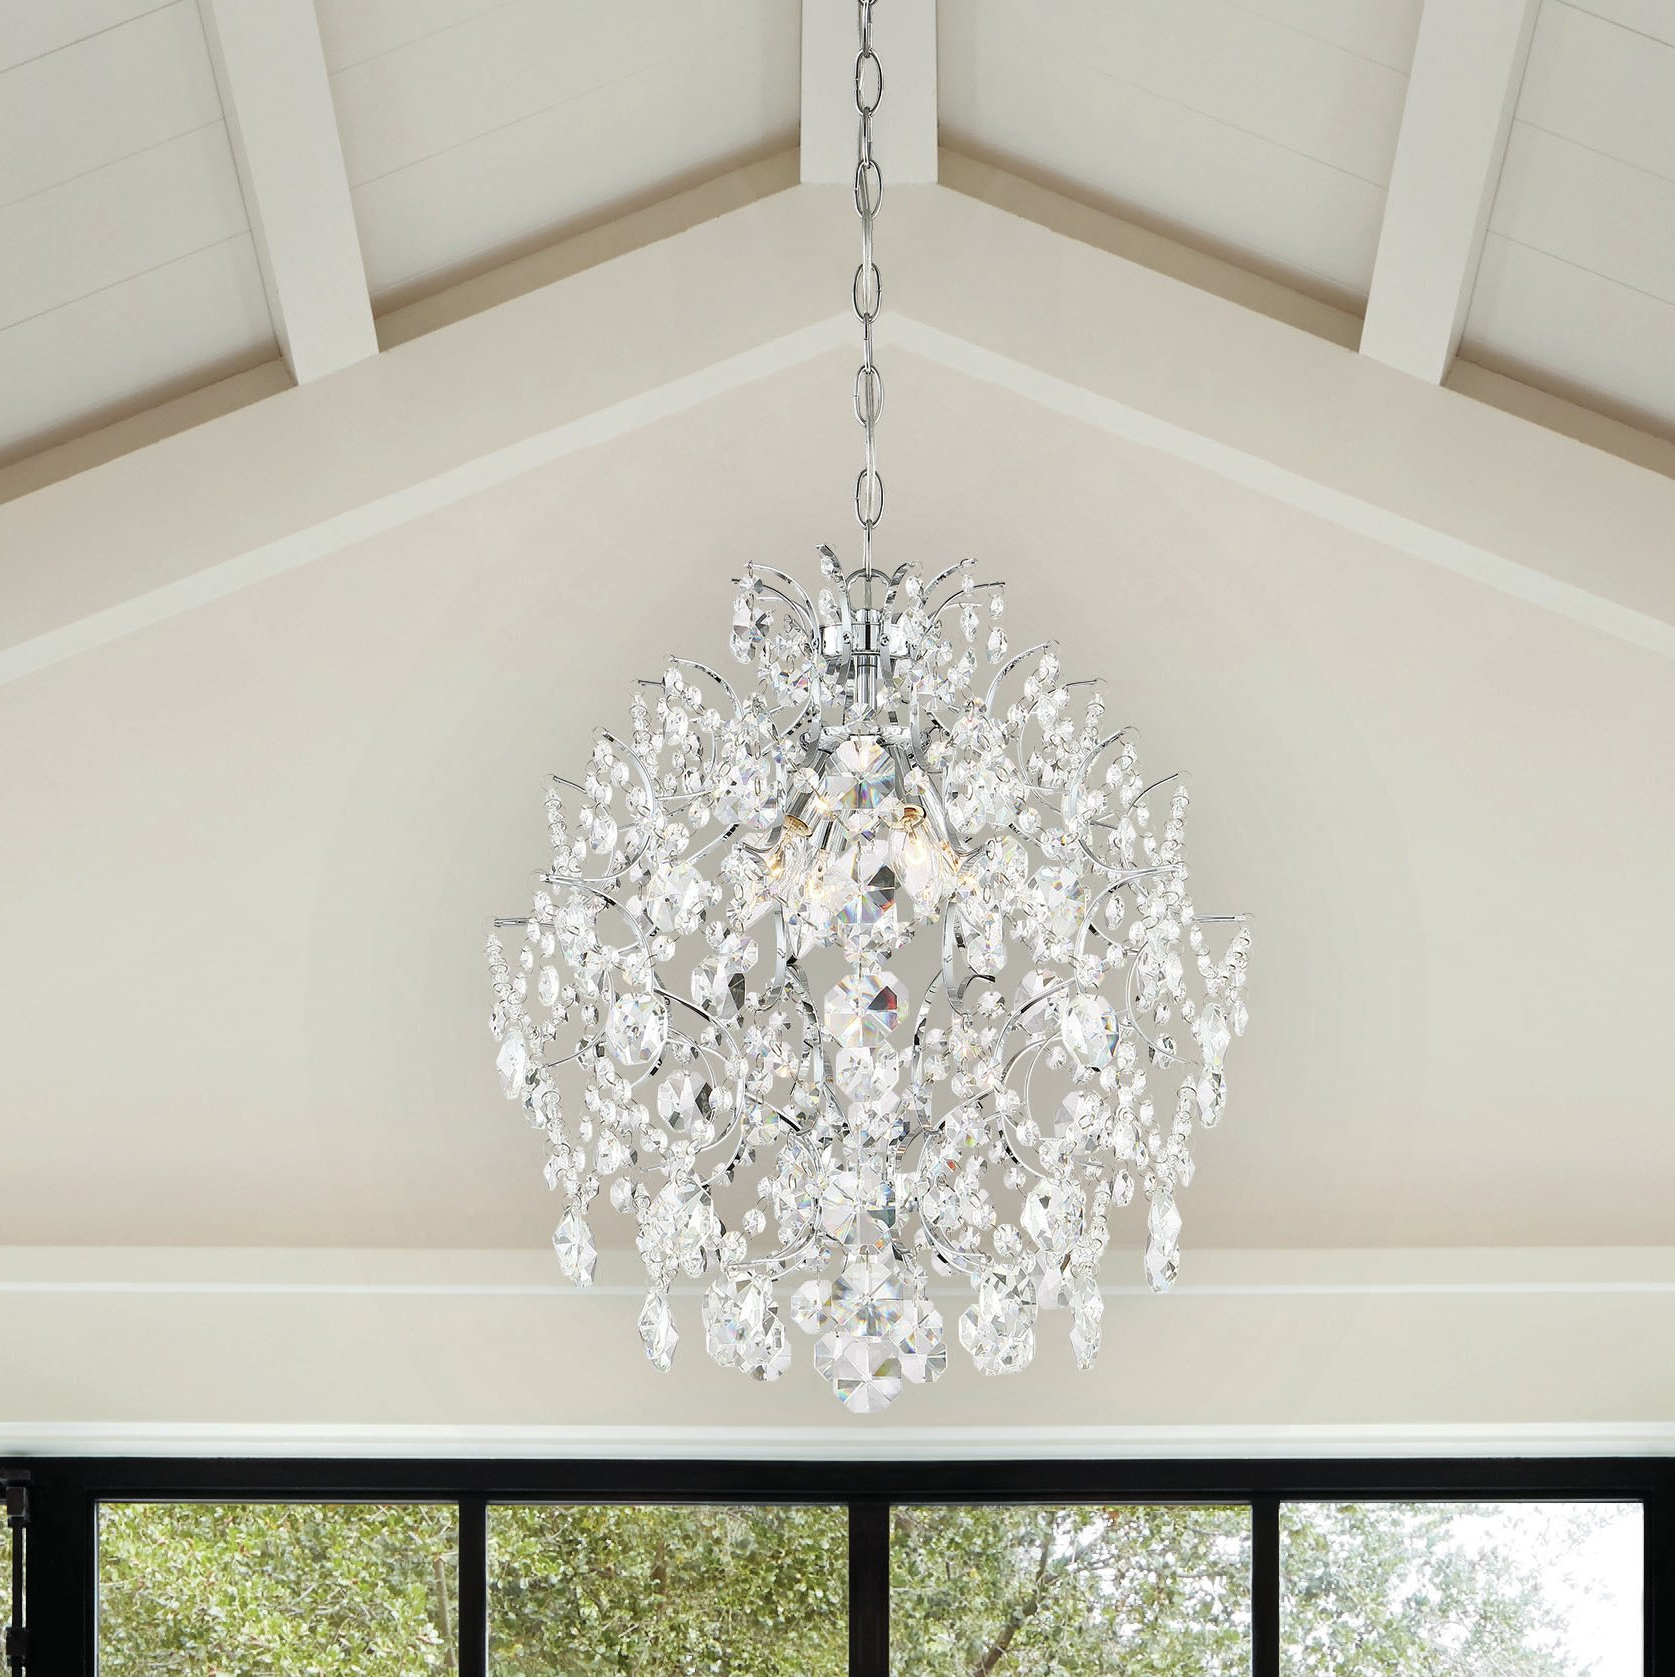 Aldgate 4 Light Crystal Chandeliers For 2020 4 Light Chrome Crystal Chandelier (View 18 of 25)